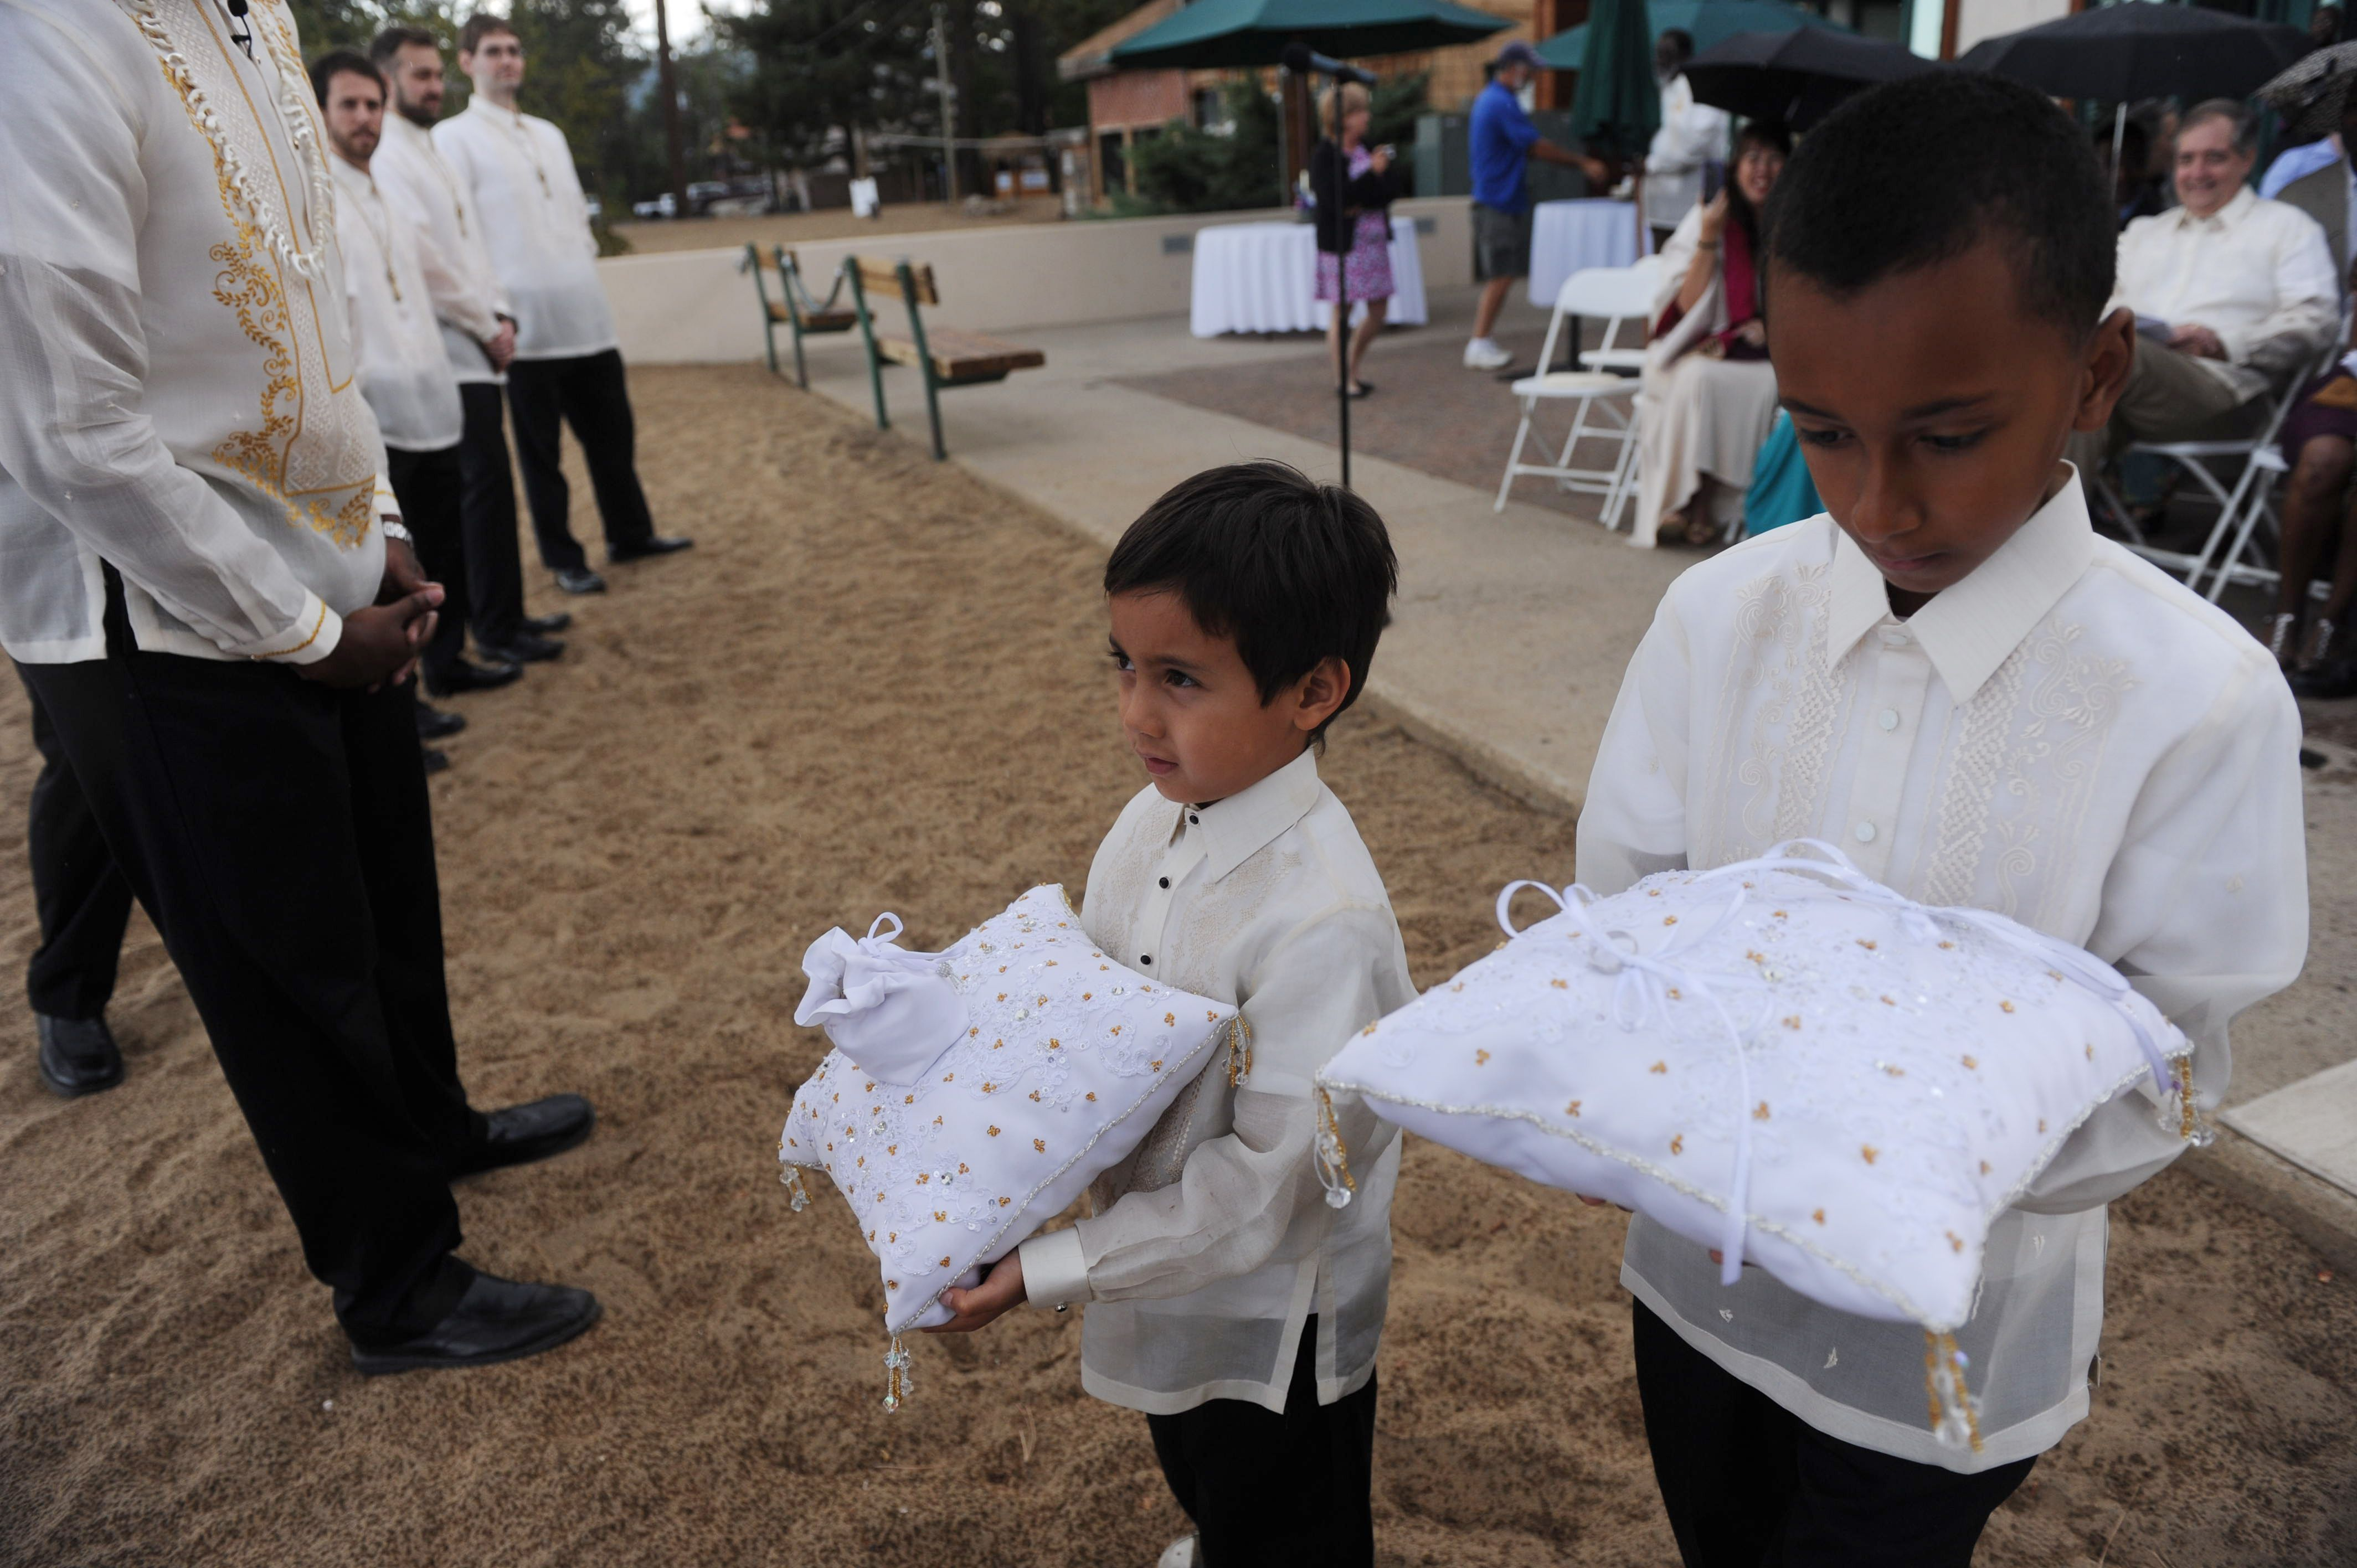 Our ring and coin bearers in Filipino formal wear barongs